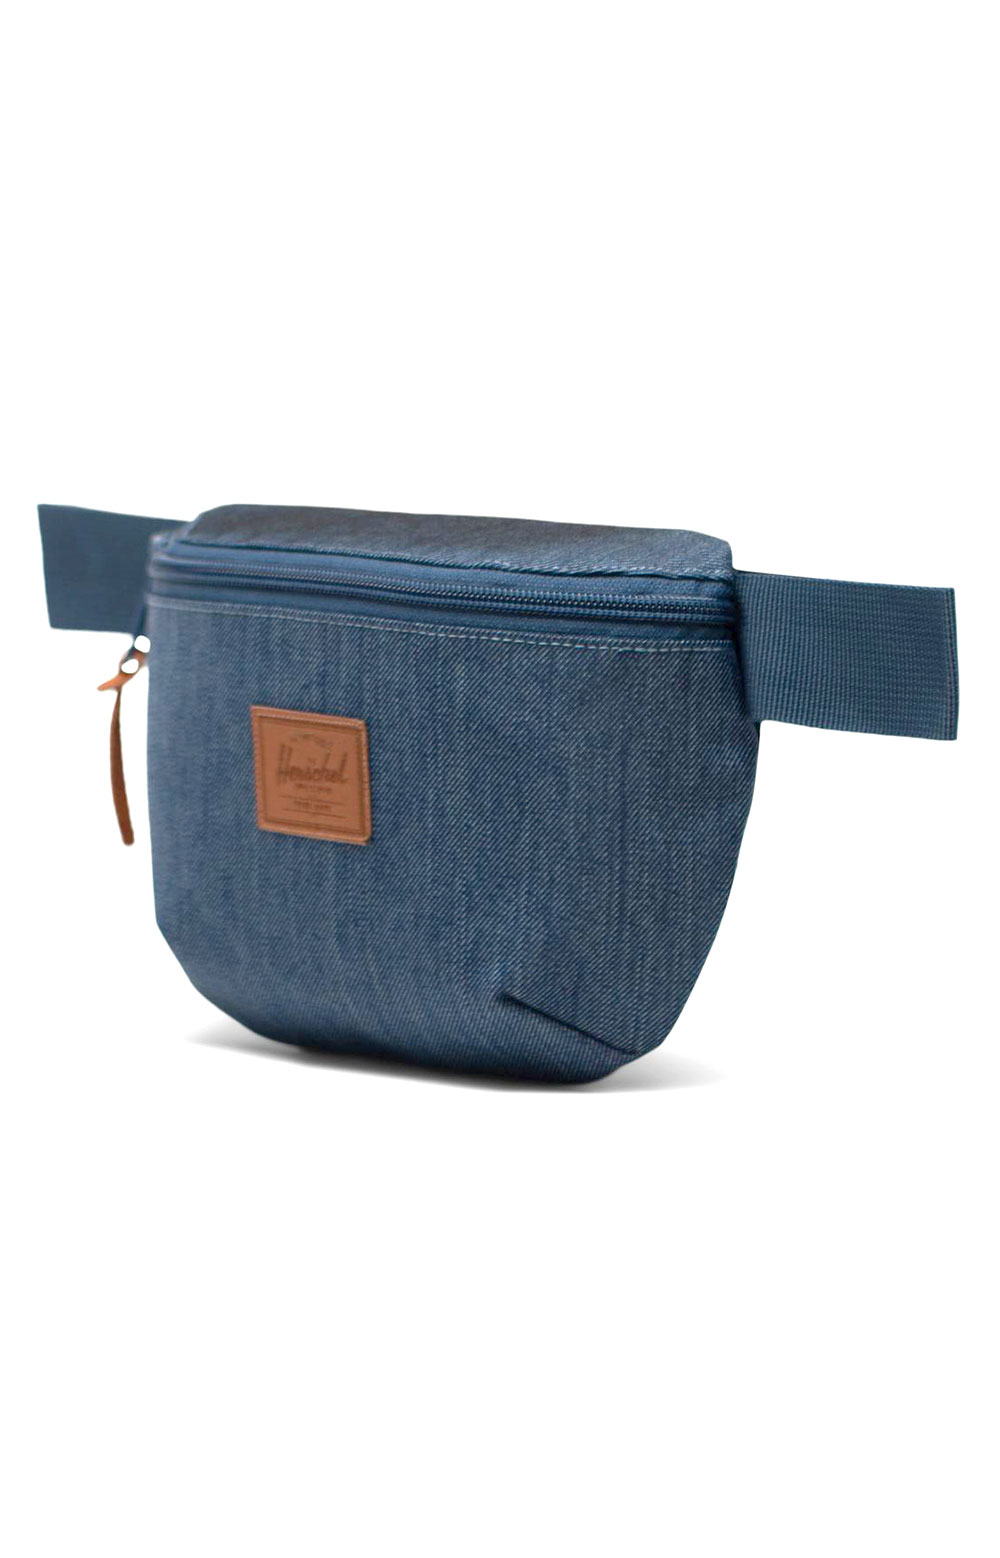 Fourteen Hip Pack - Indigo Denim 2